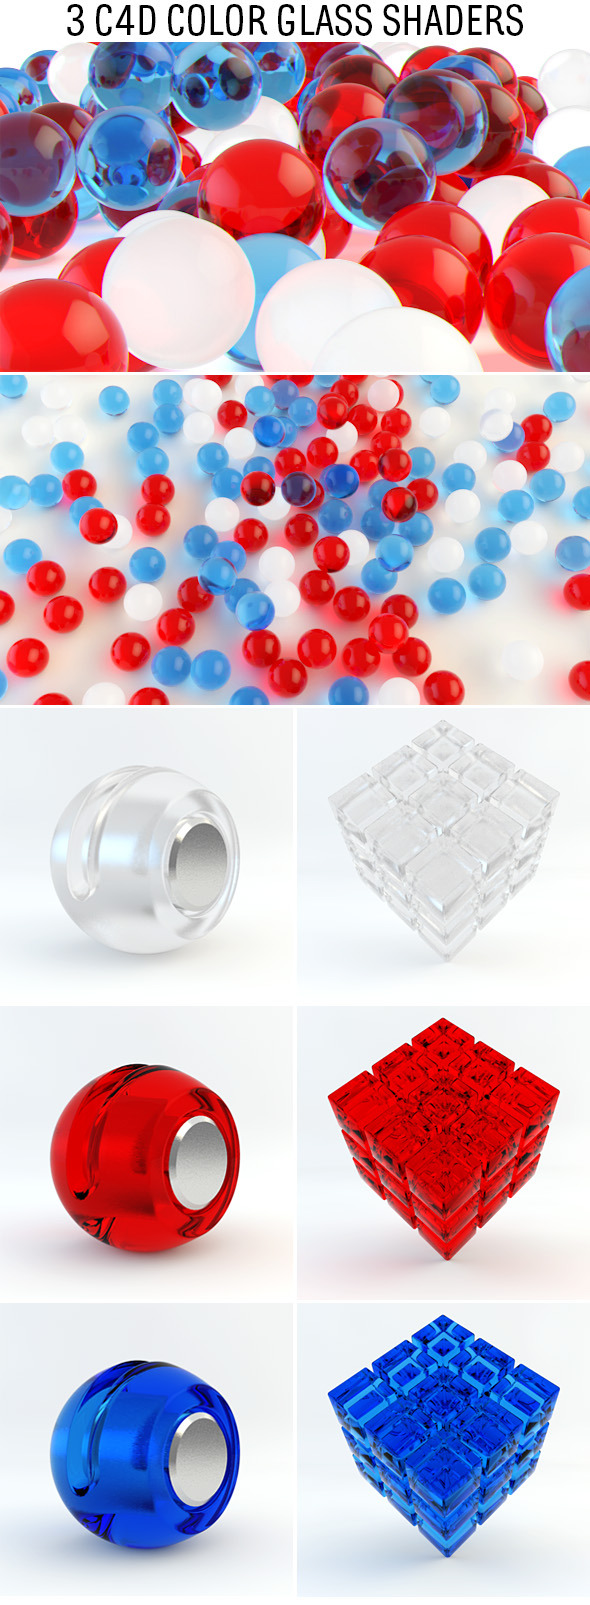 3DOcean 3 C4D Color Glass Shaders 10025496